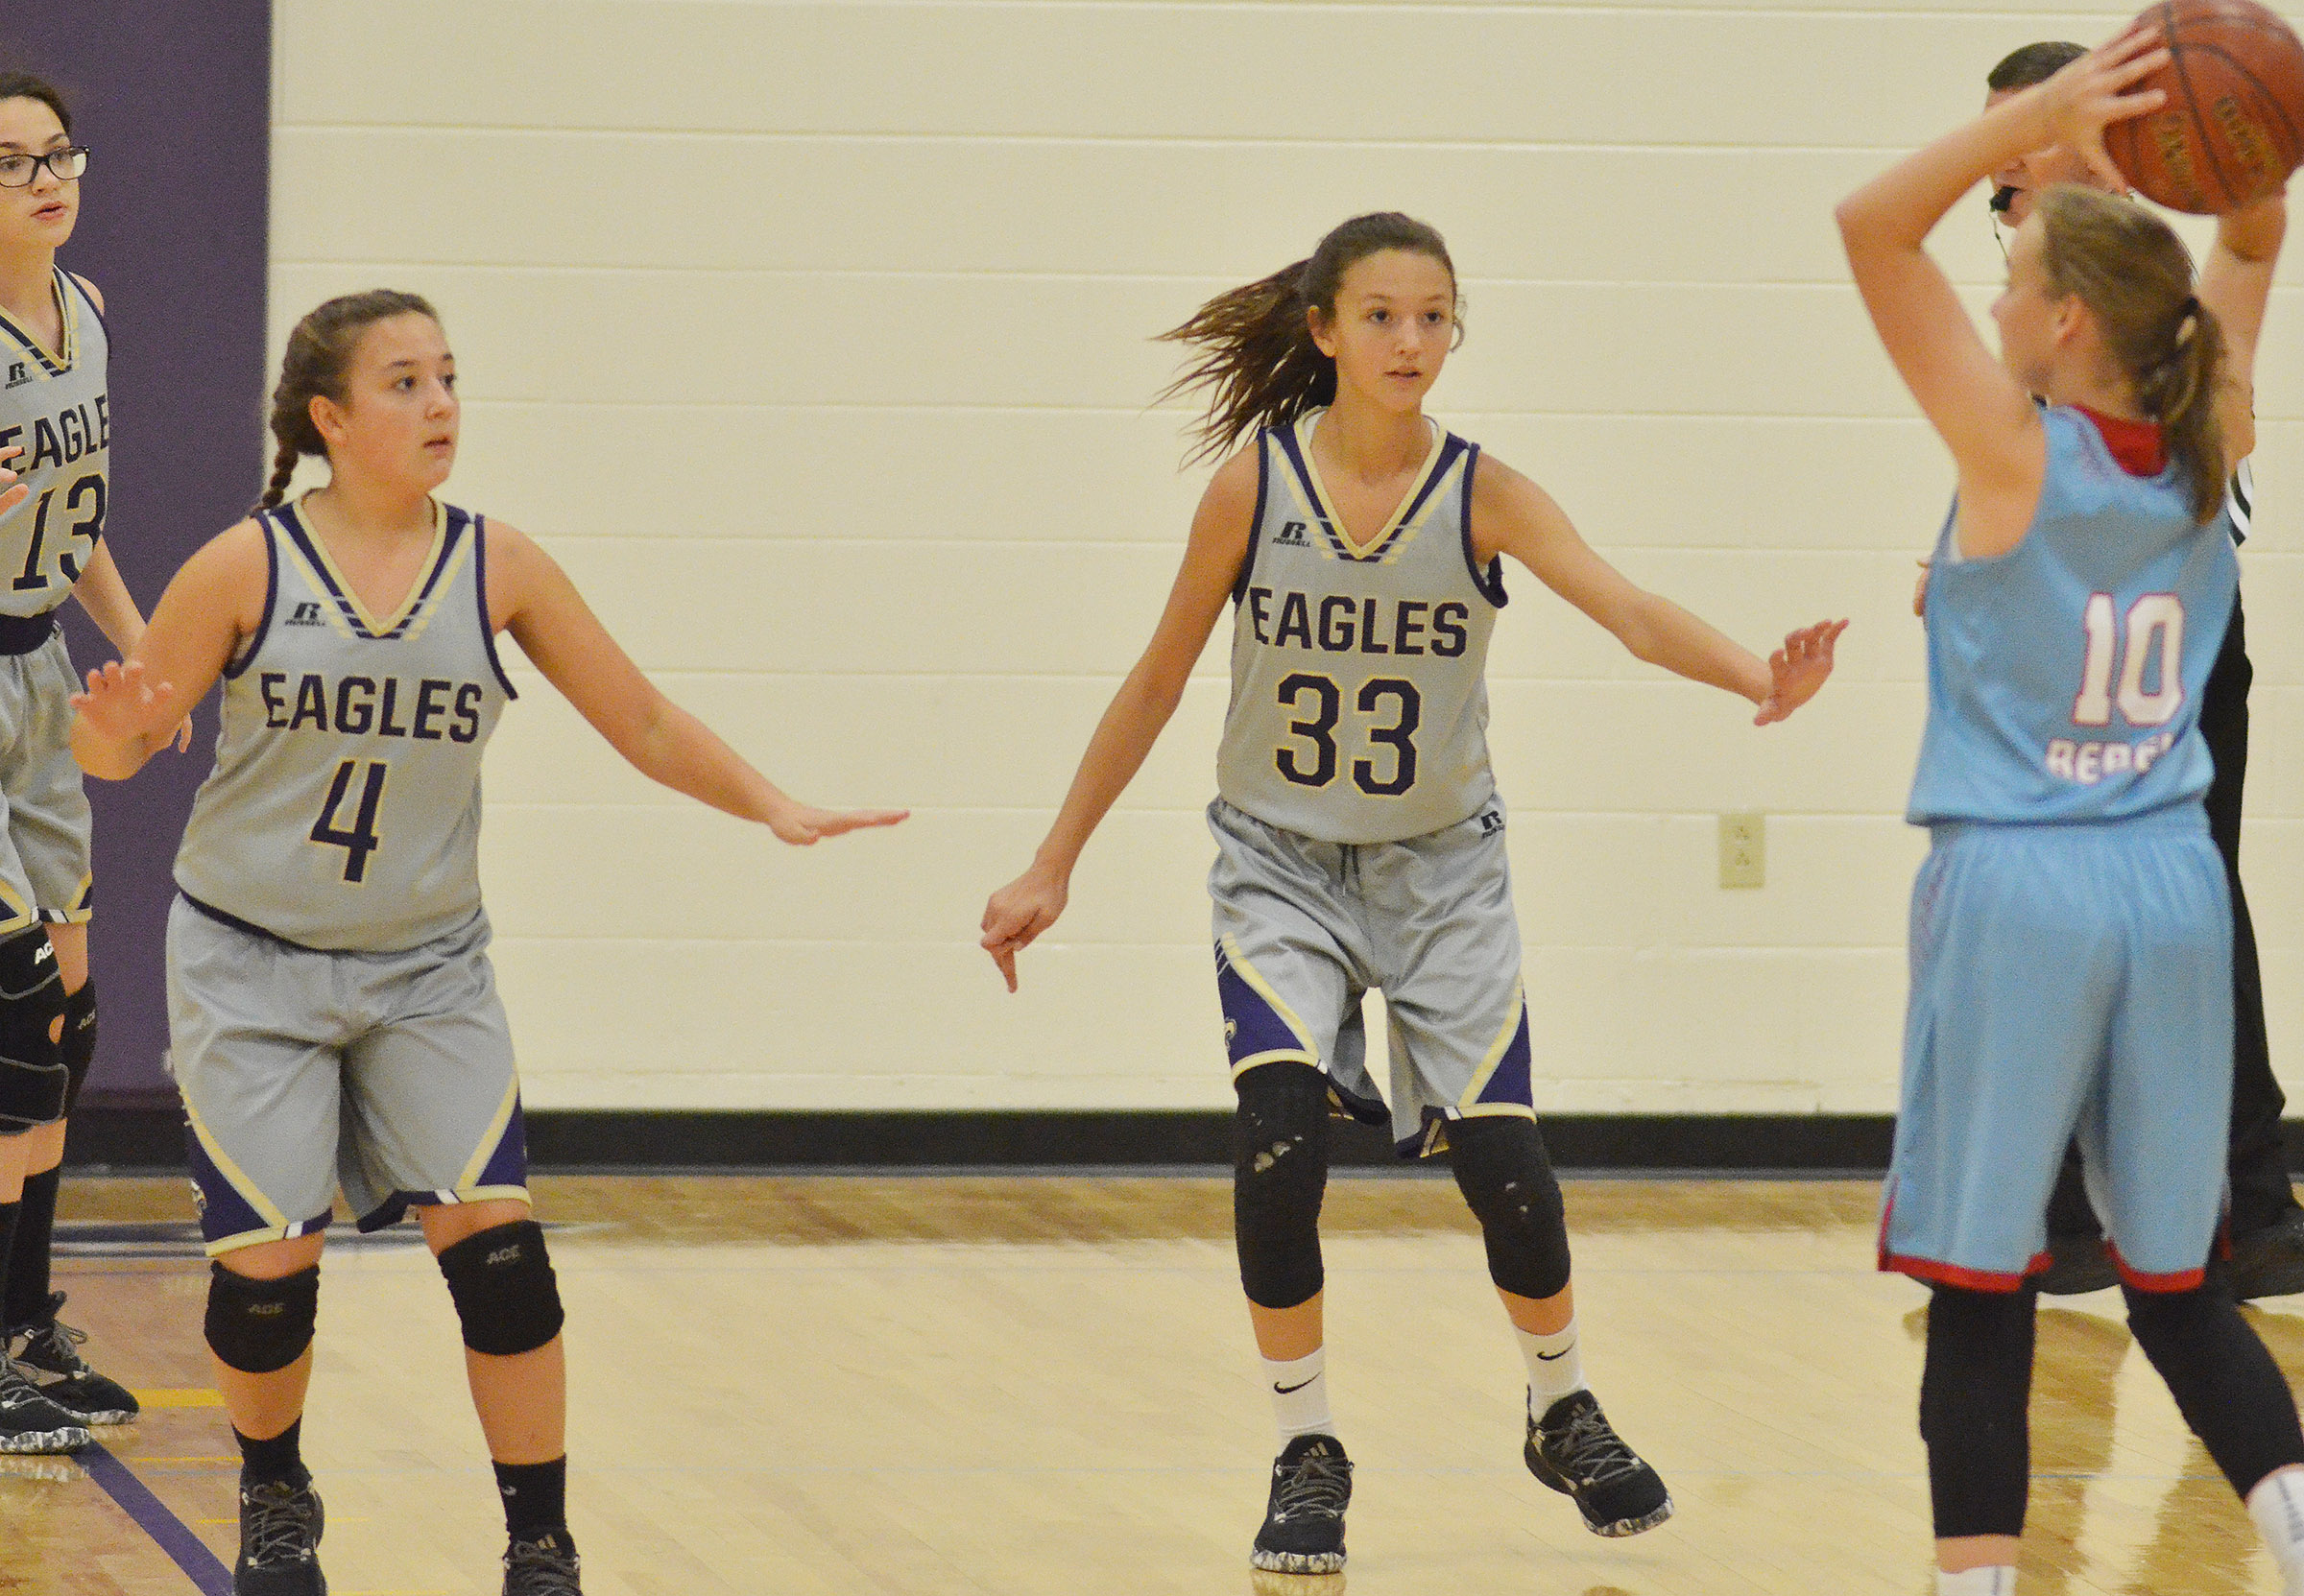 CMS seventh-graders, from left, Mary Russell, Briana Davis and Bri Hayes play defense.